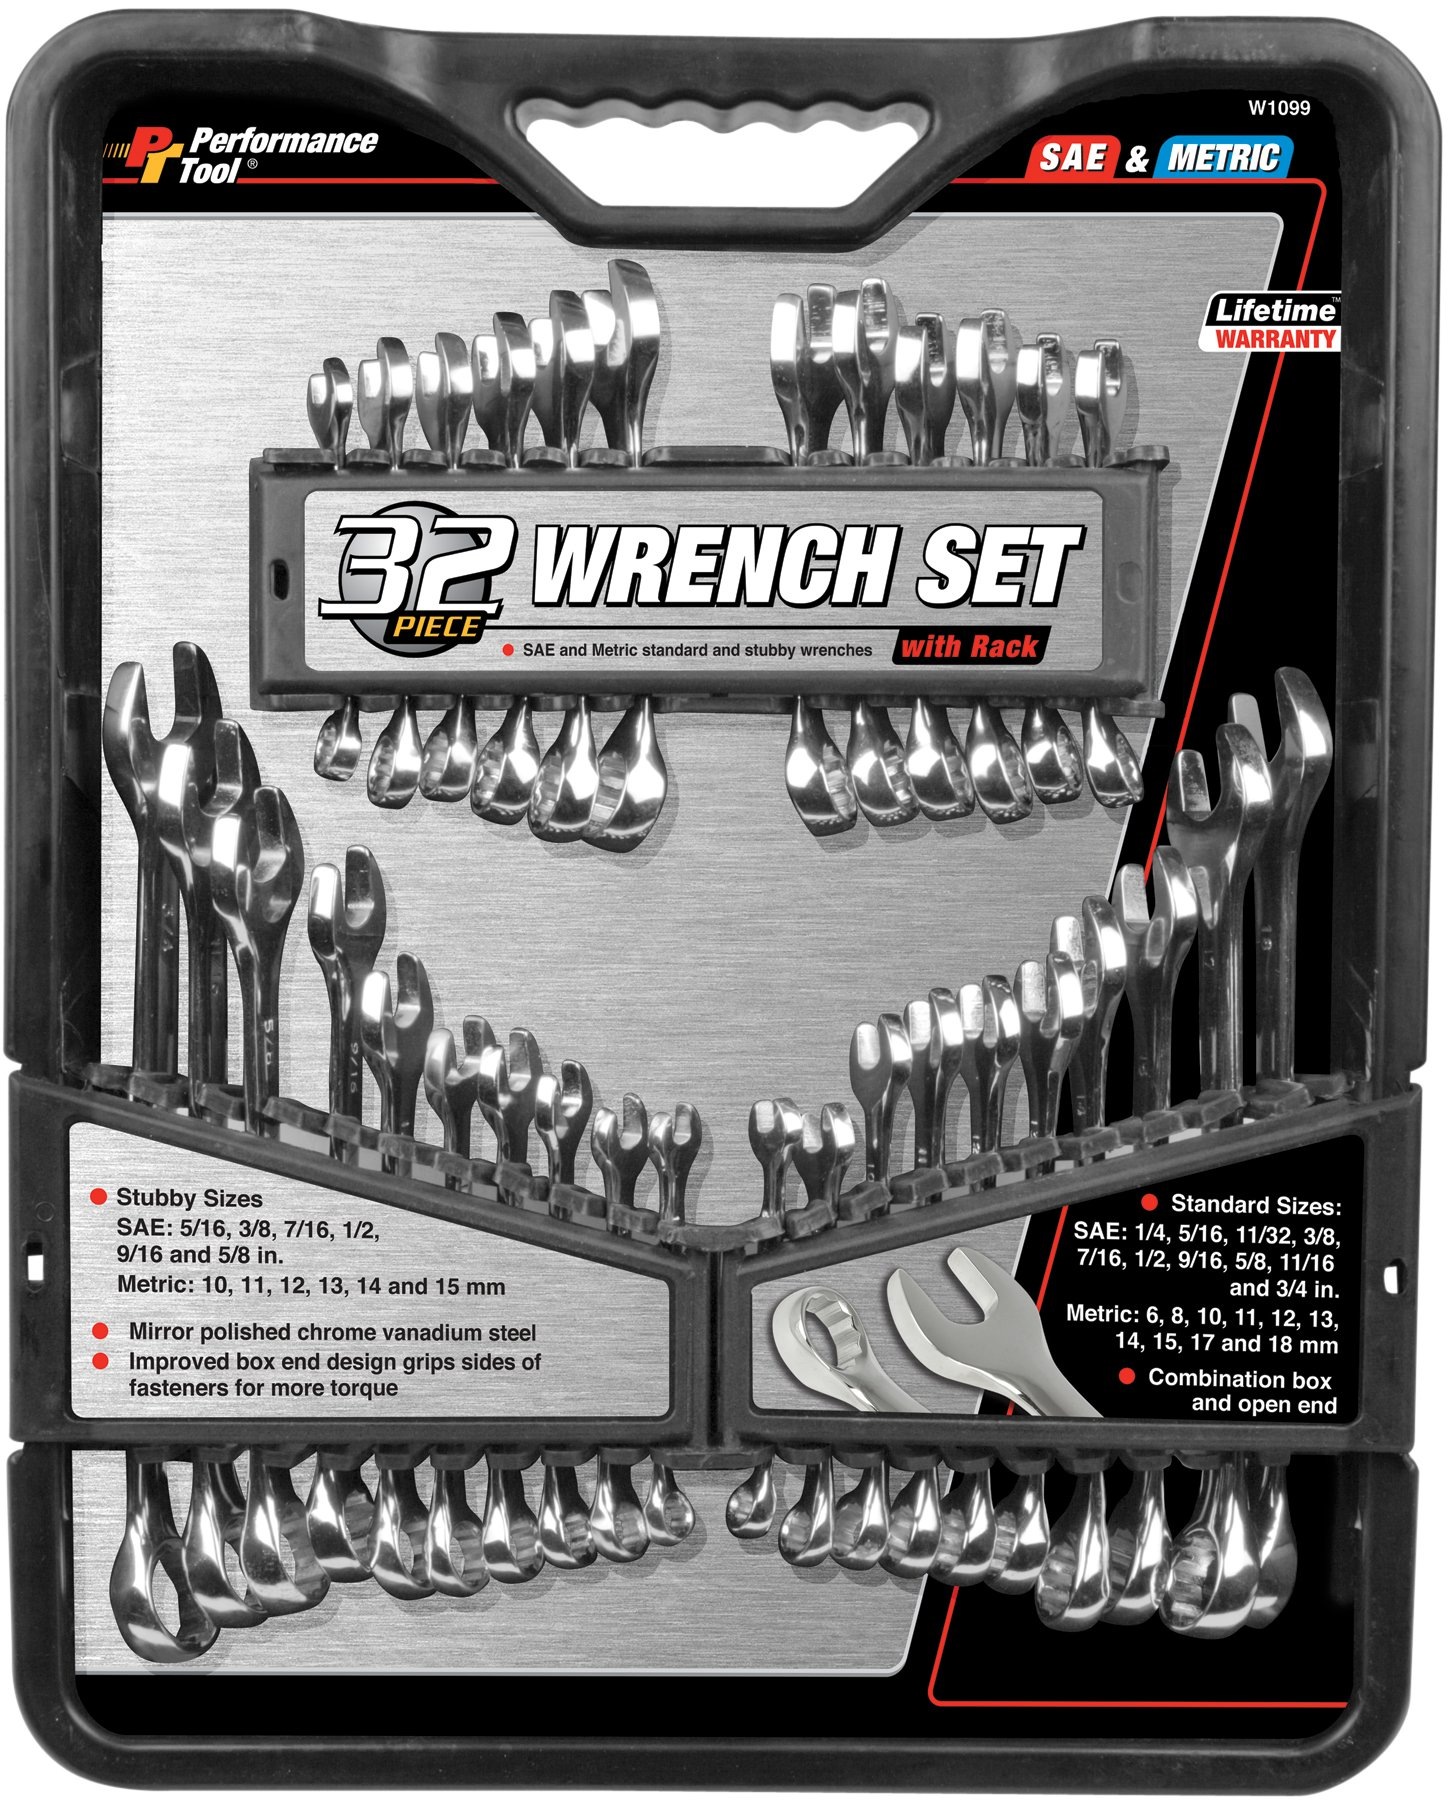 Performance Tool W1104M 13 Piece Large Metric Wrench Set